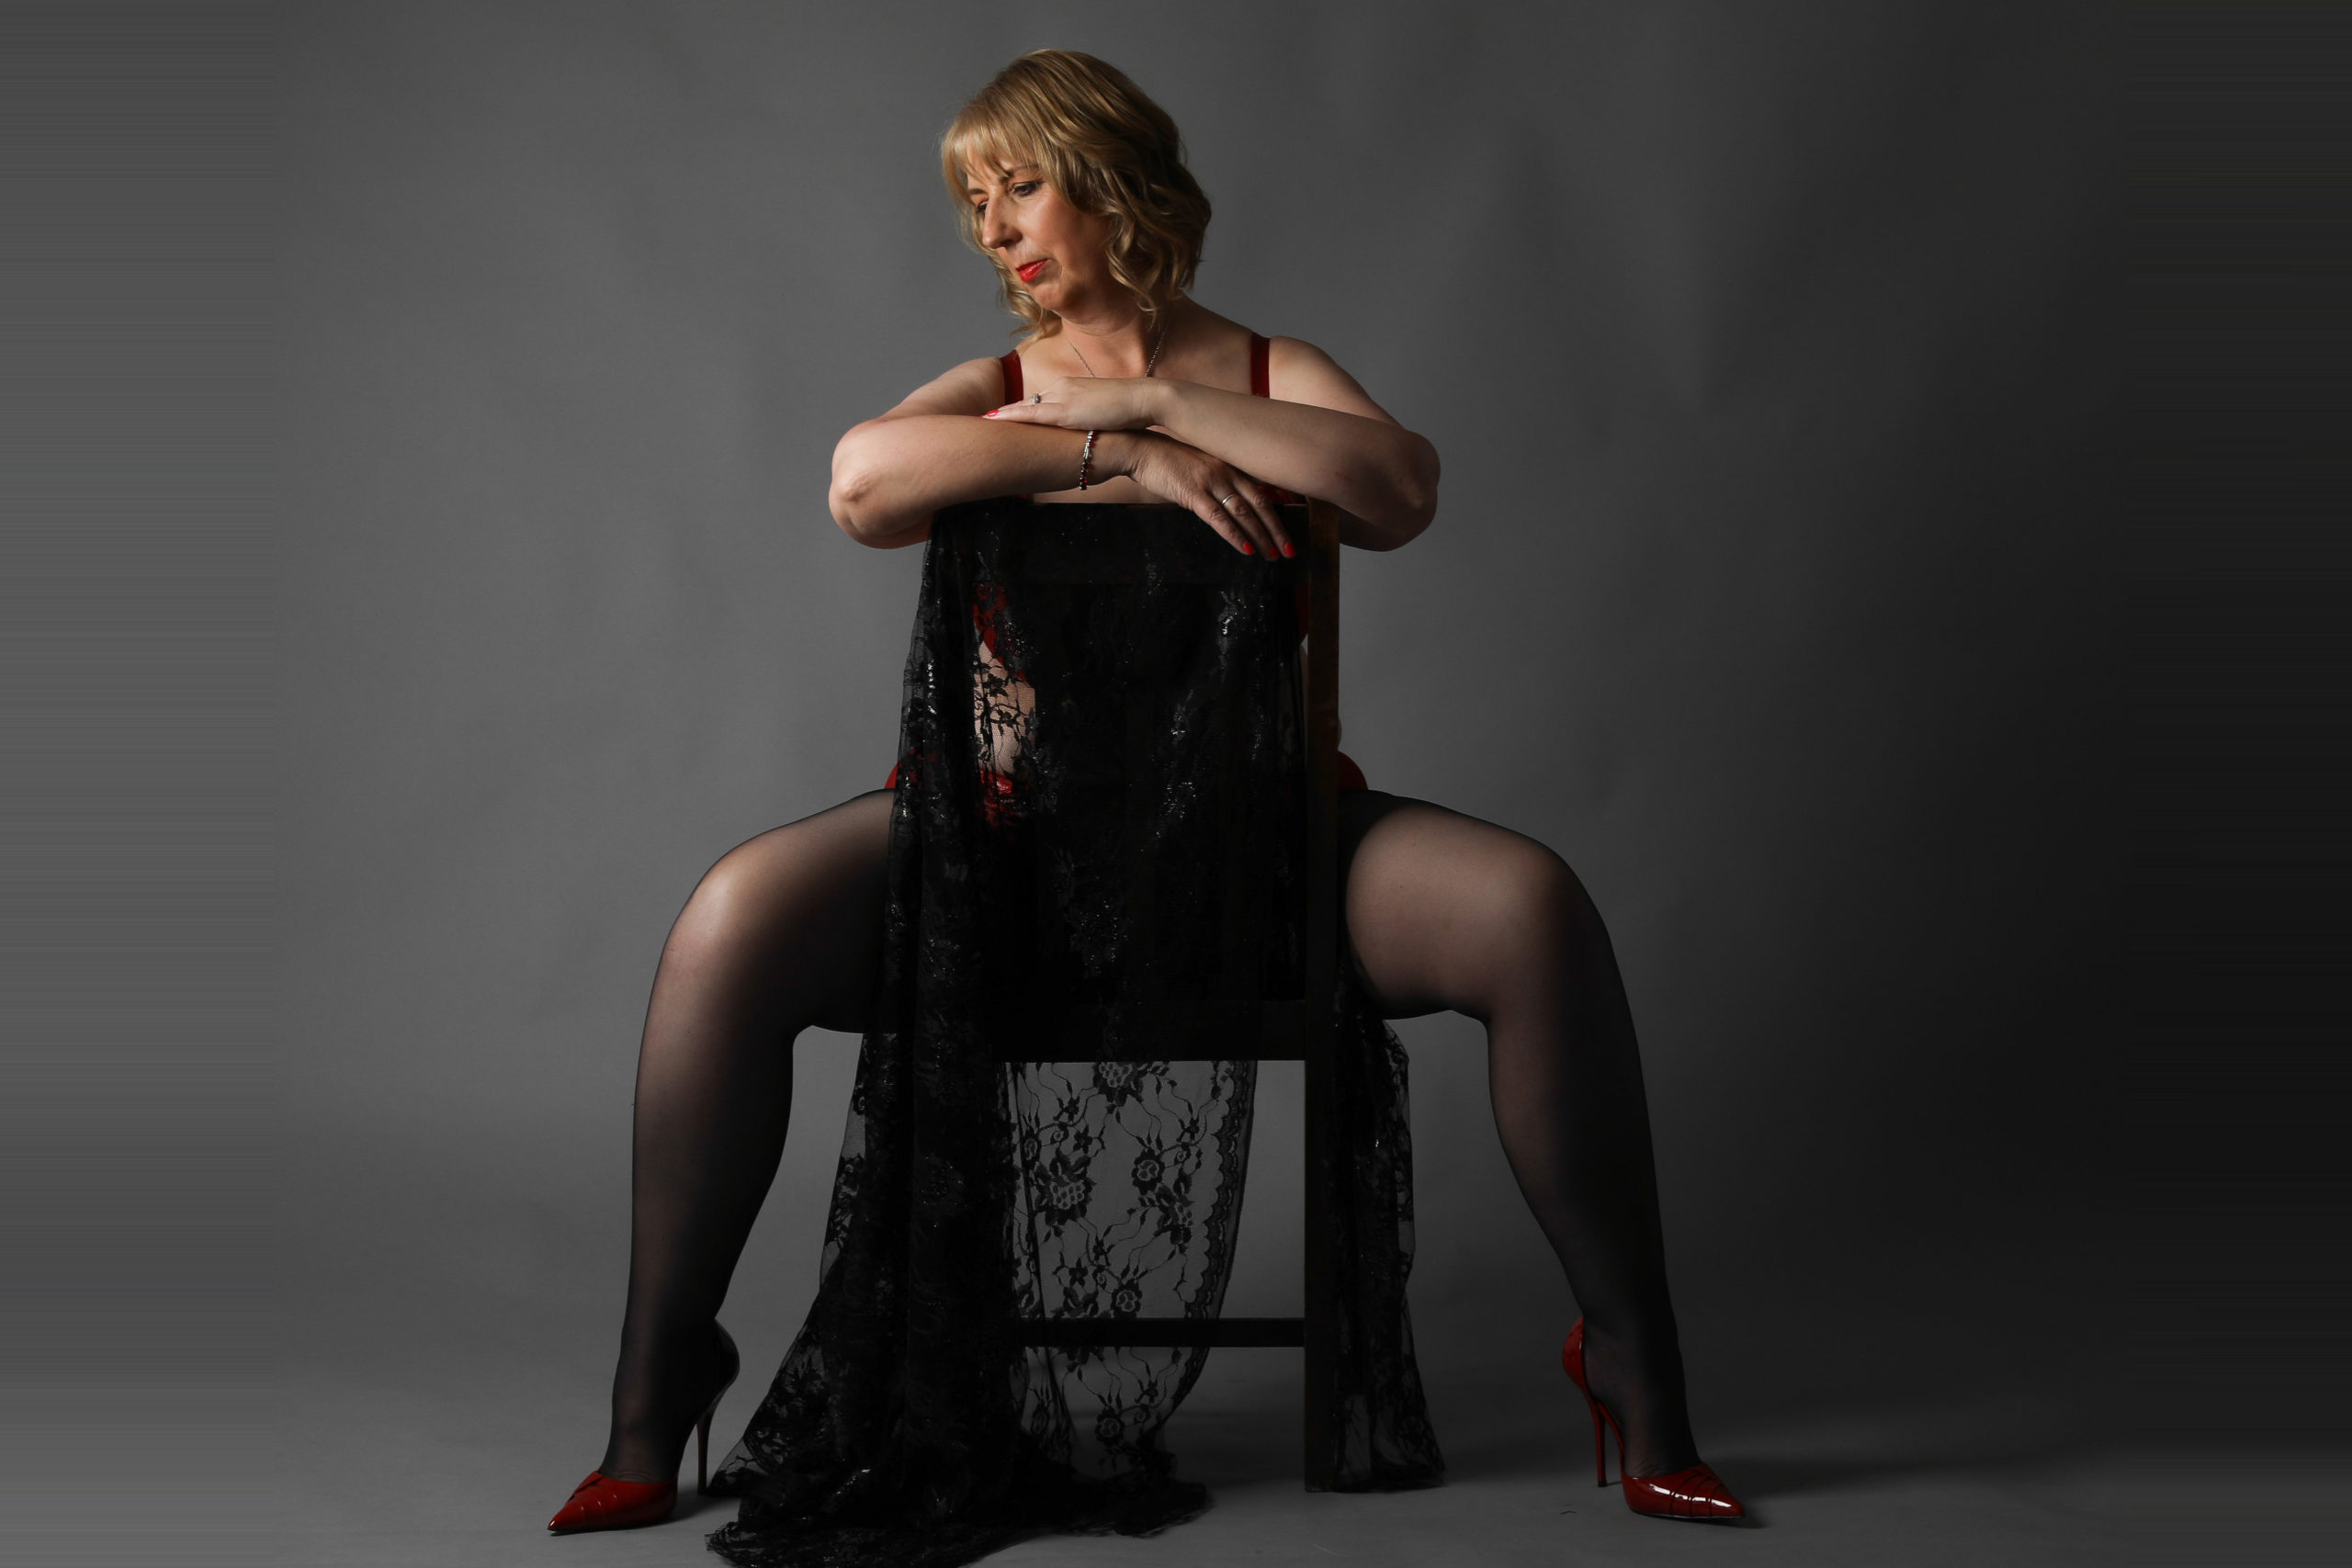 boudoir photography chair straddle